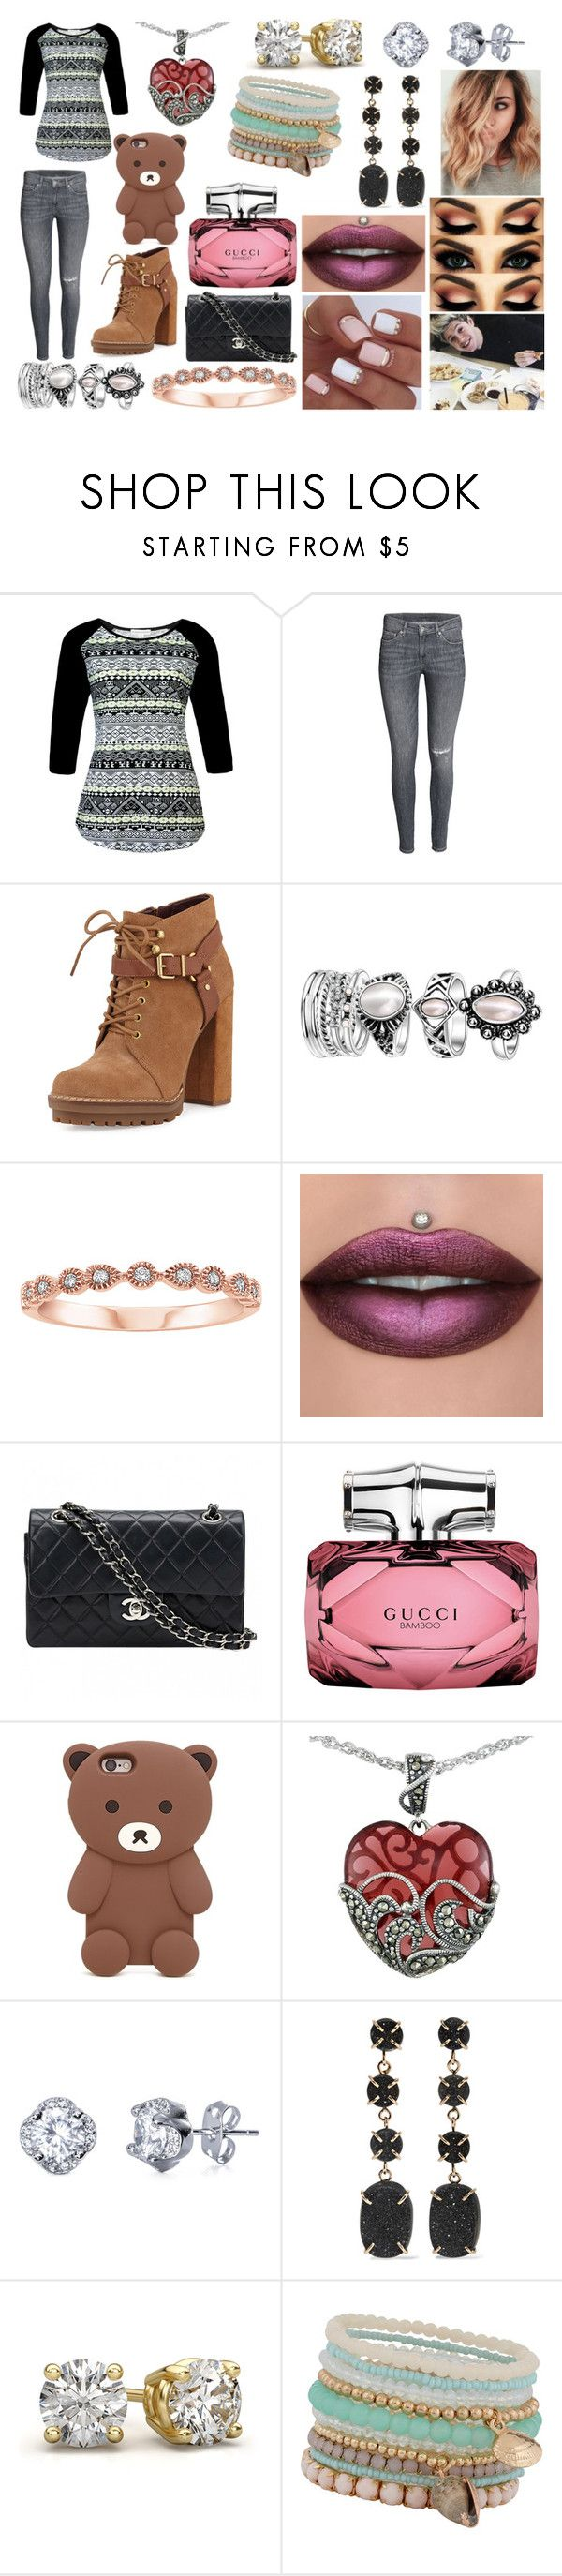 """""""Lunch Date with Niall Horan"""" by kitty-styles-horan-biedka ❤ liked on Polyvore featuring BCBGeneration, Chanel, Gucci, Forever 21, Lord & Taylor, Melissa Joy Manning and ALDO"""